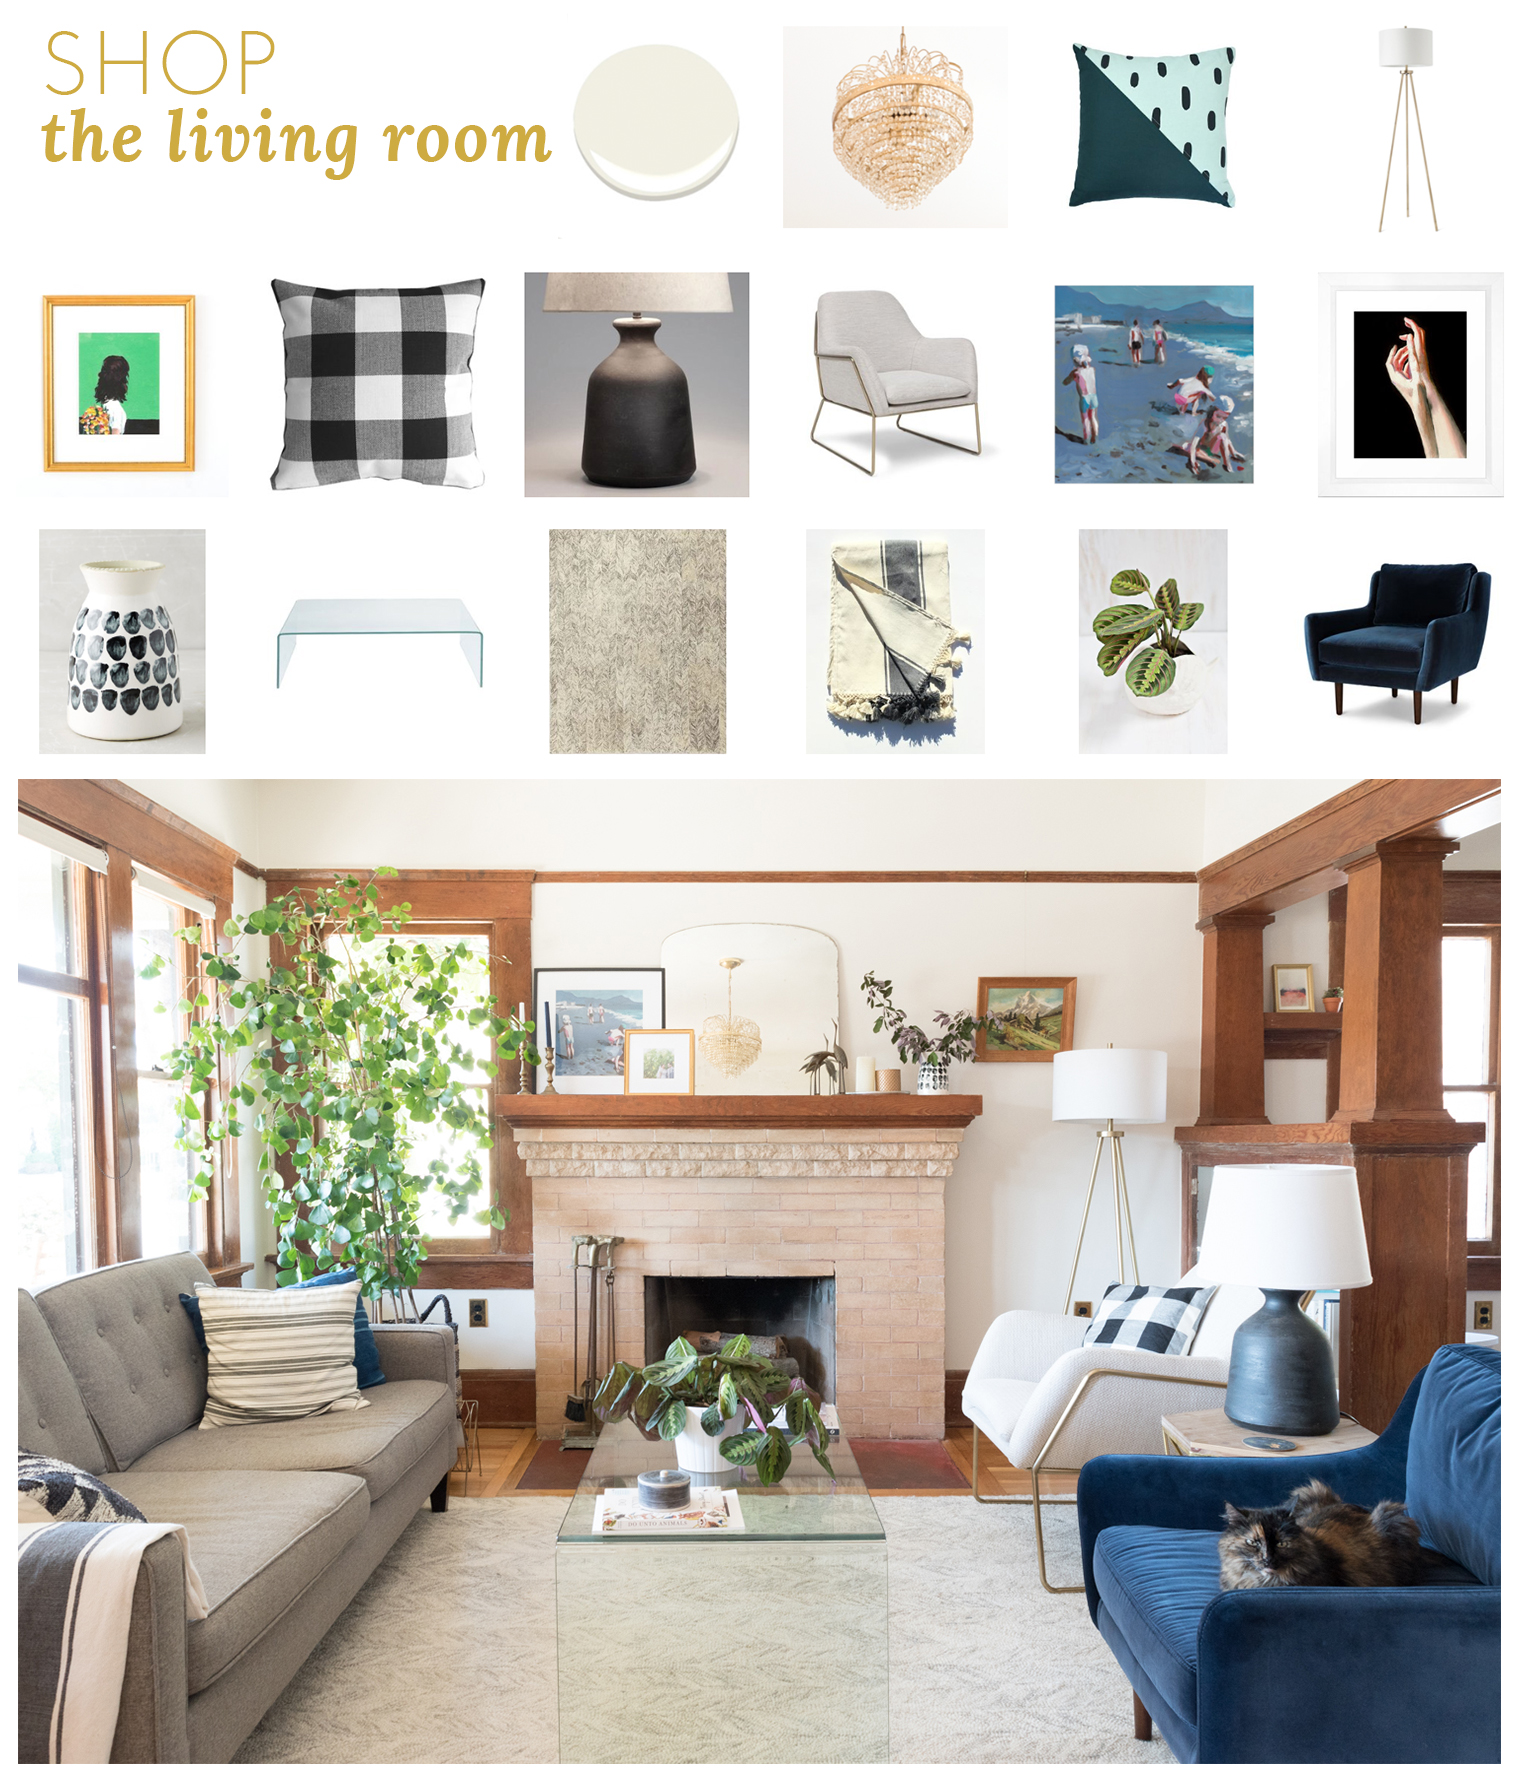 Shop+the+living+room+The+Gold+Hive.jpg